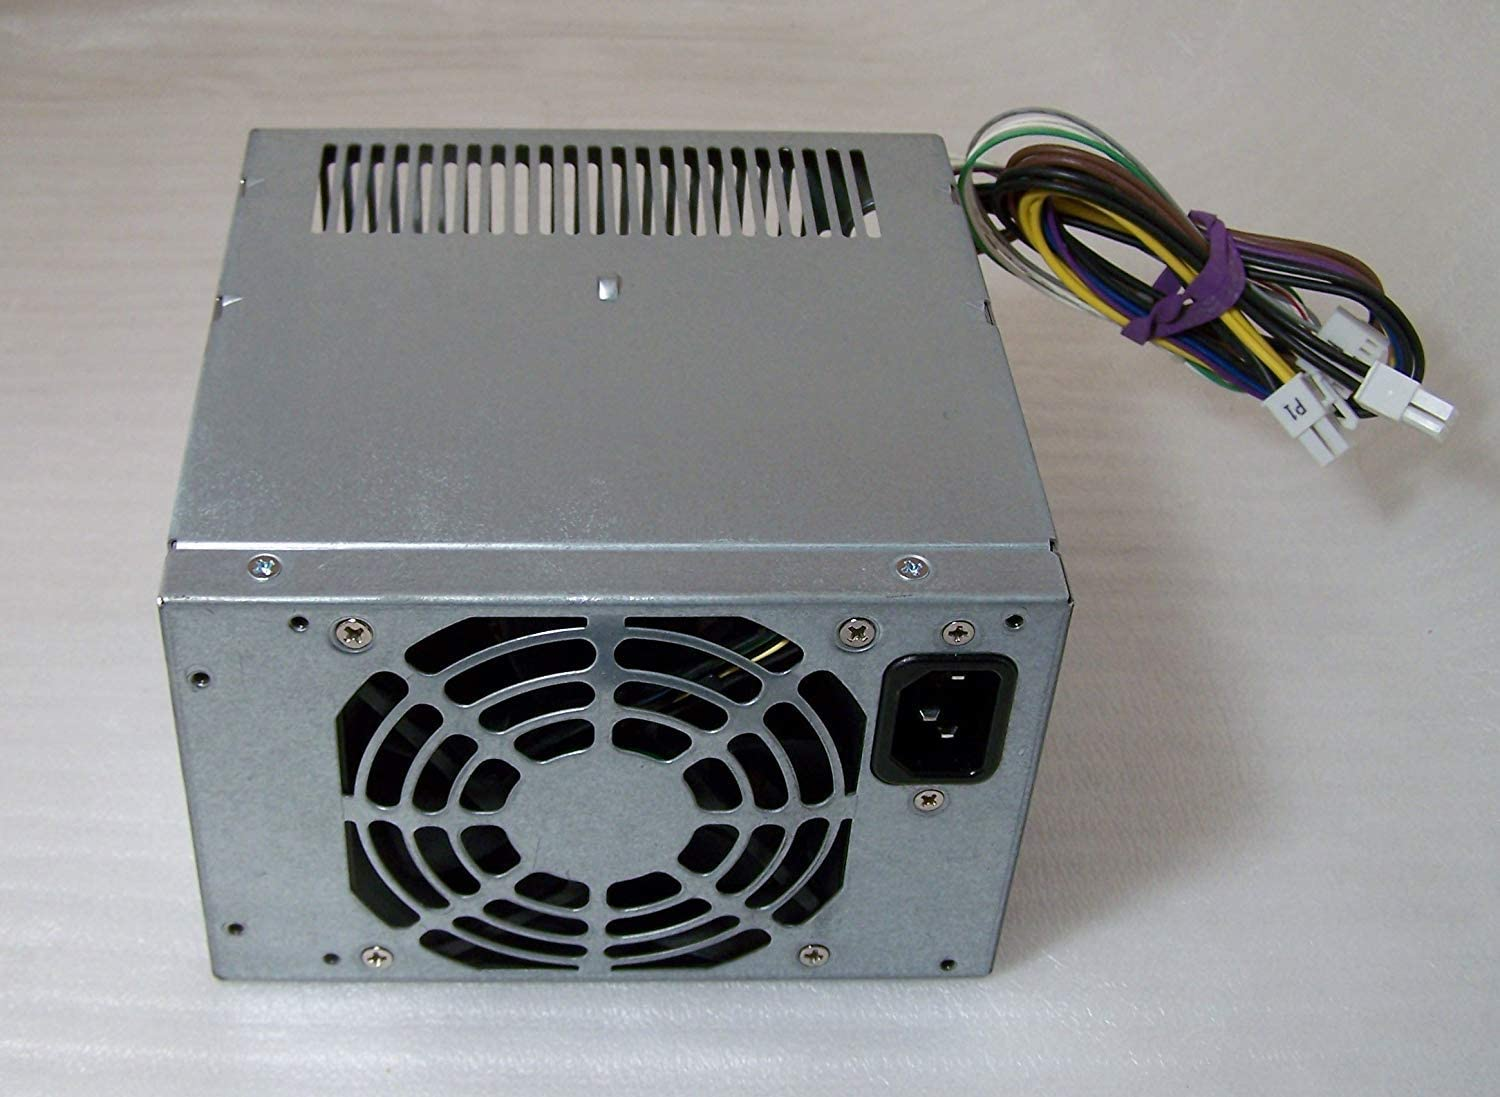 HP 613764-001 Power supply unit (PSU) - Four 12VDC output connections, 320-Watts total power - For Convertible Microtower (CMT) series (EPA 90%)